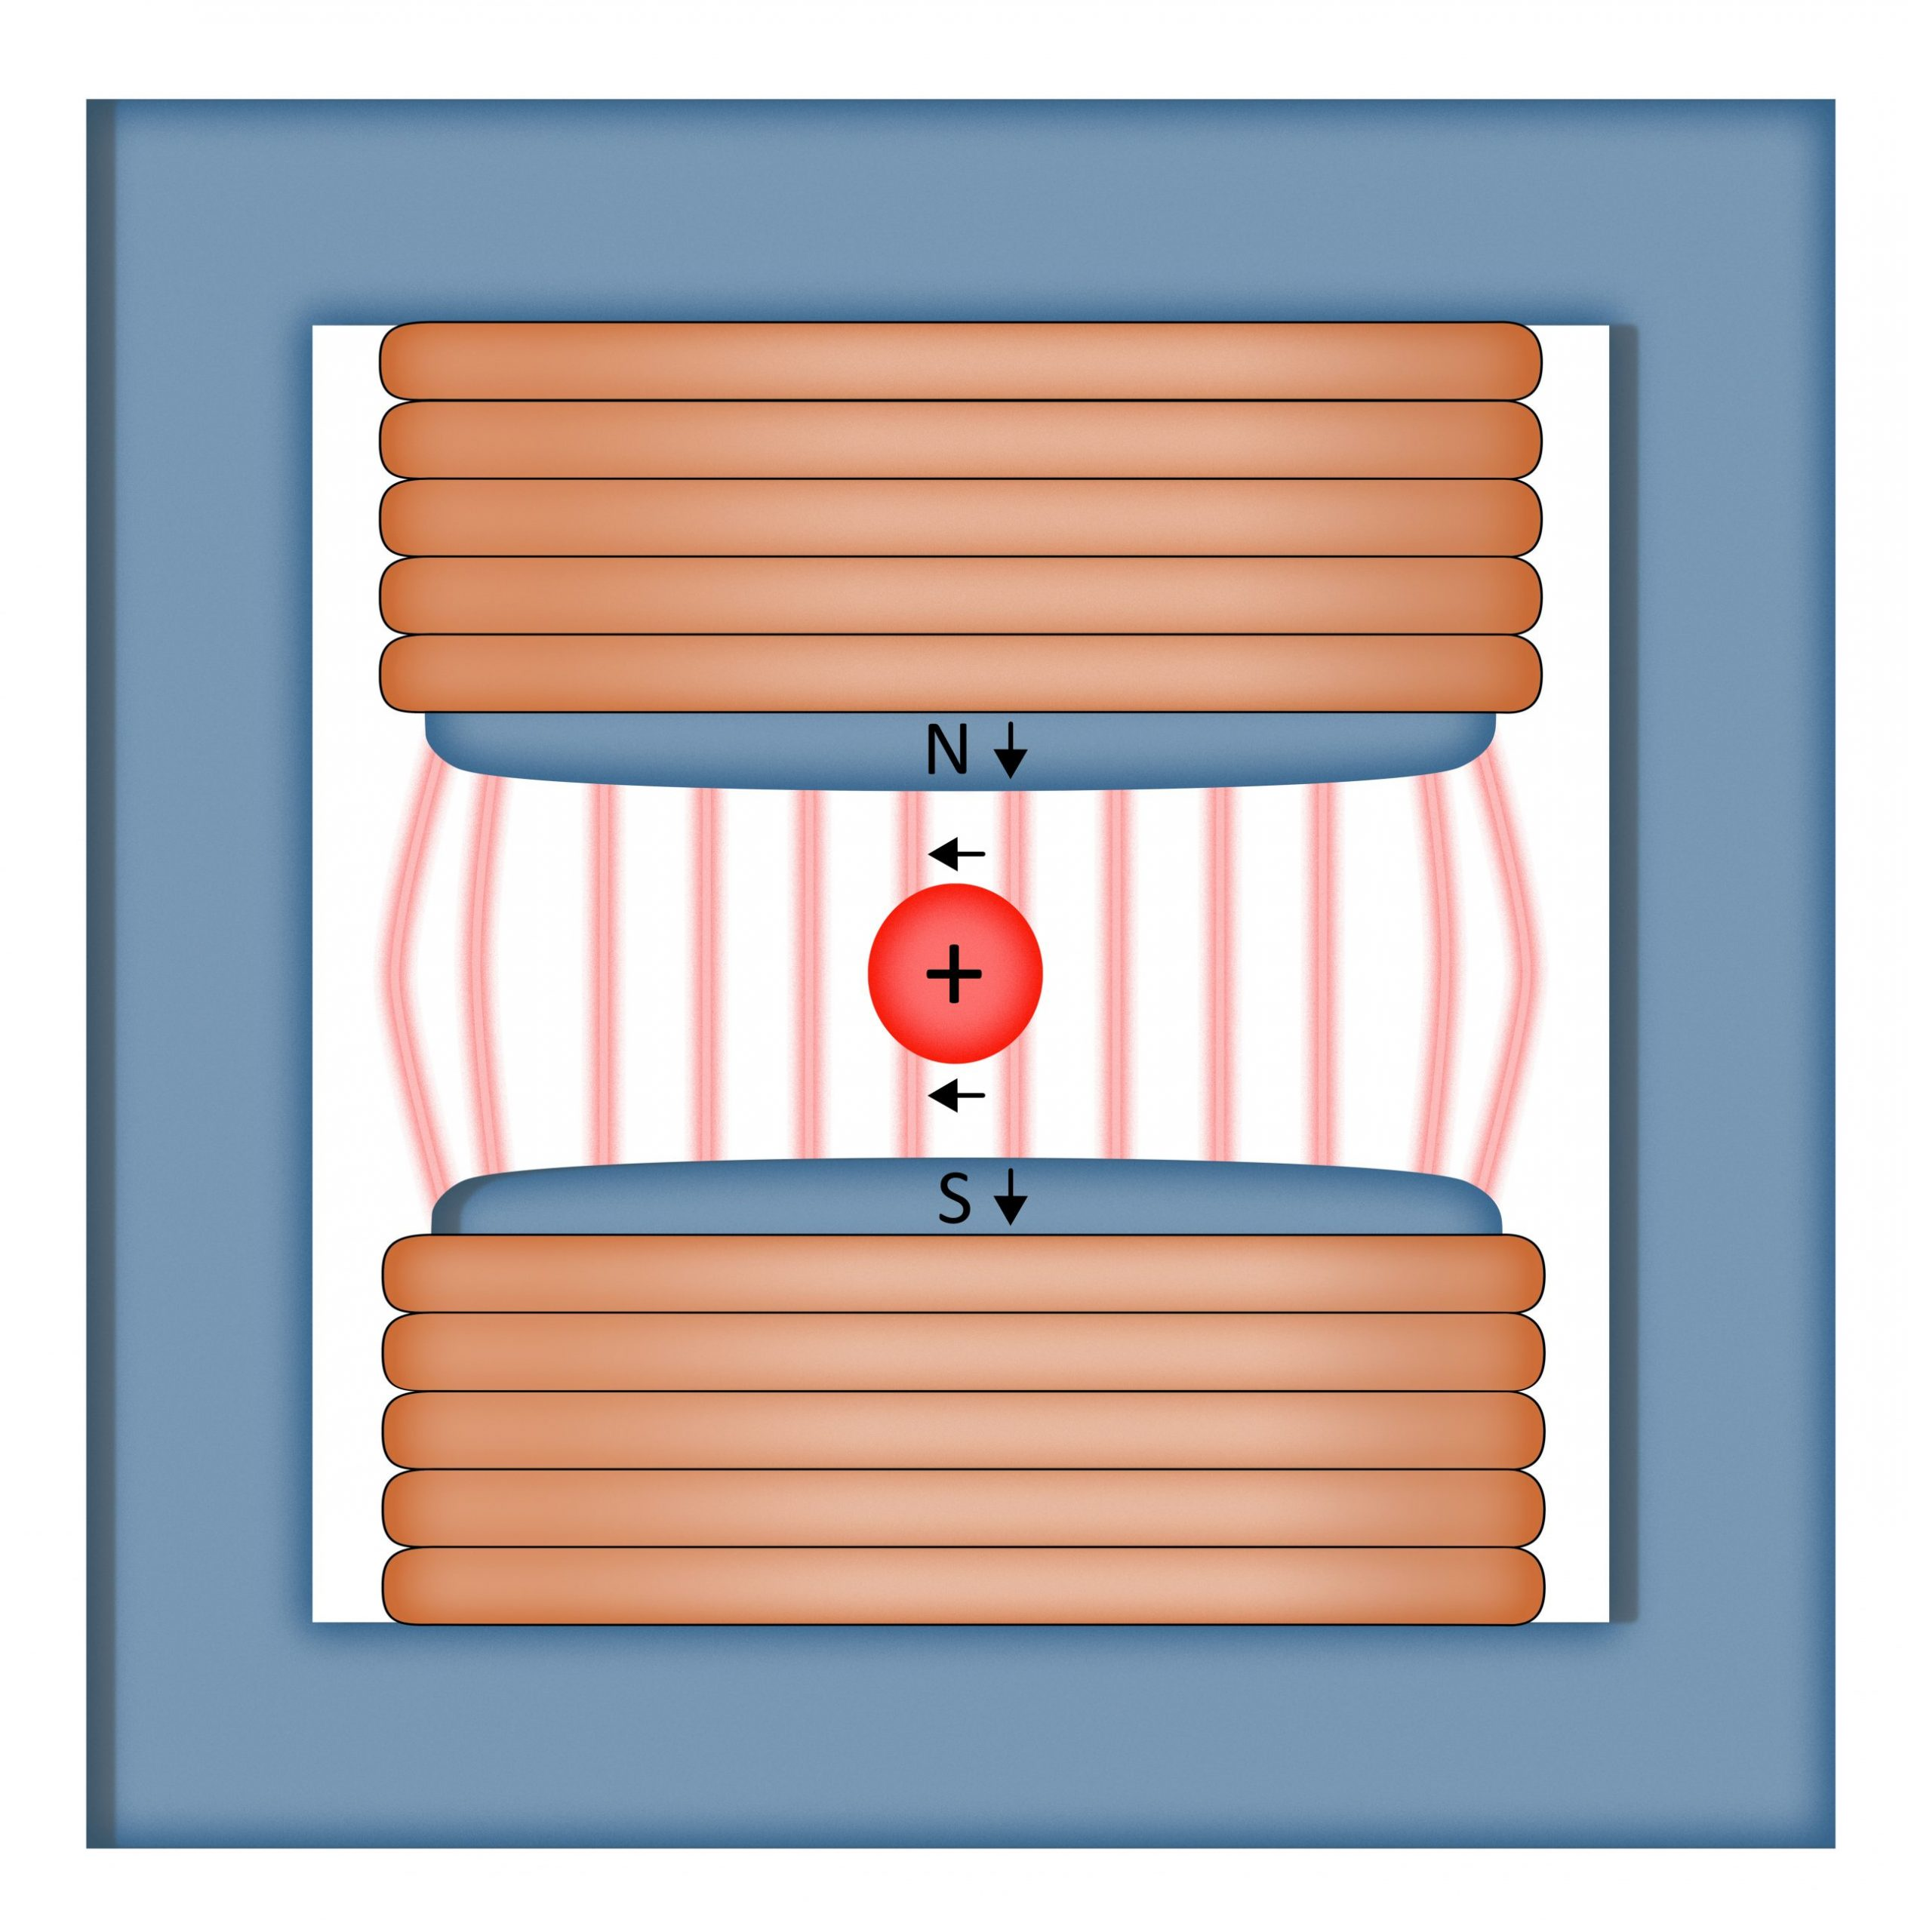 As a positively charged particle travels into the page and passes through the dipole magnet, it is deflected to the left at an angle proportional to the amount of force applied by the magnet.